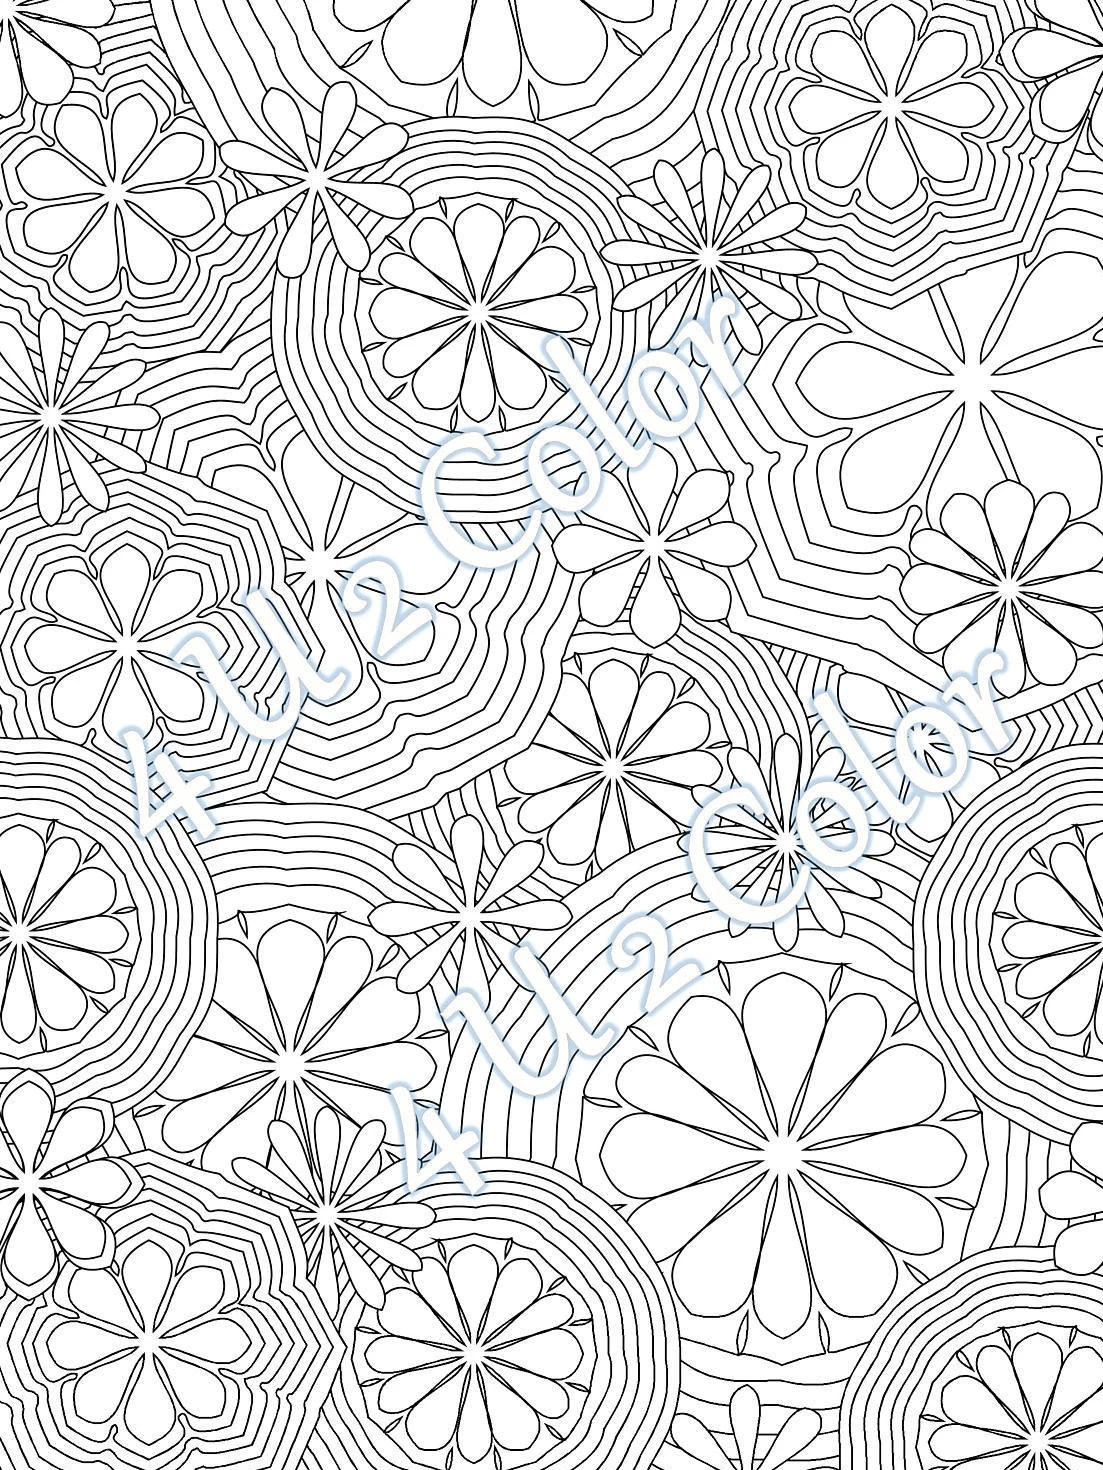 Flower power coloring pages printable worksheets and activities